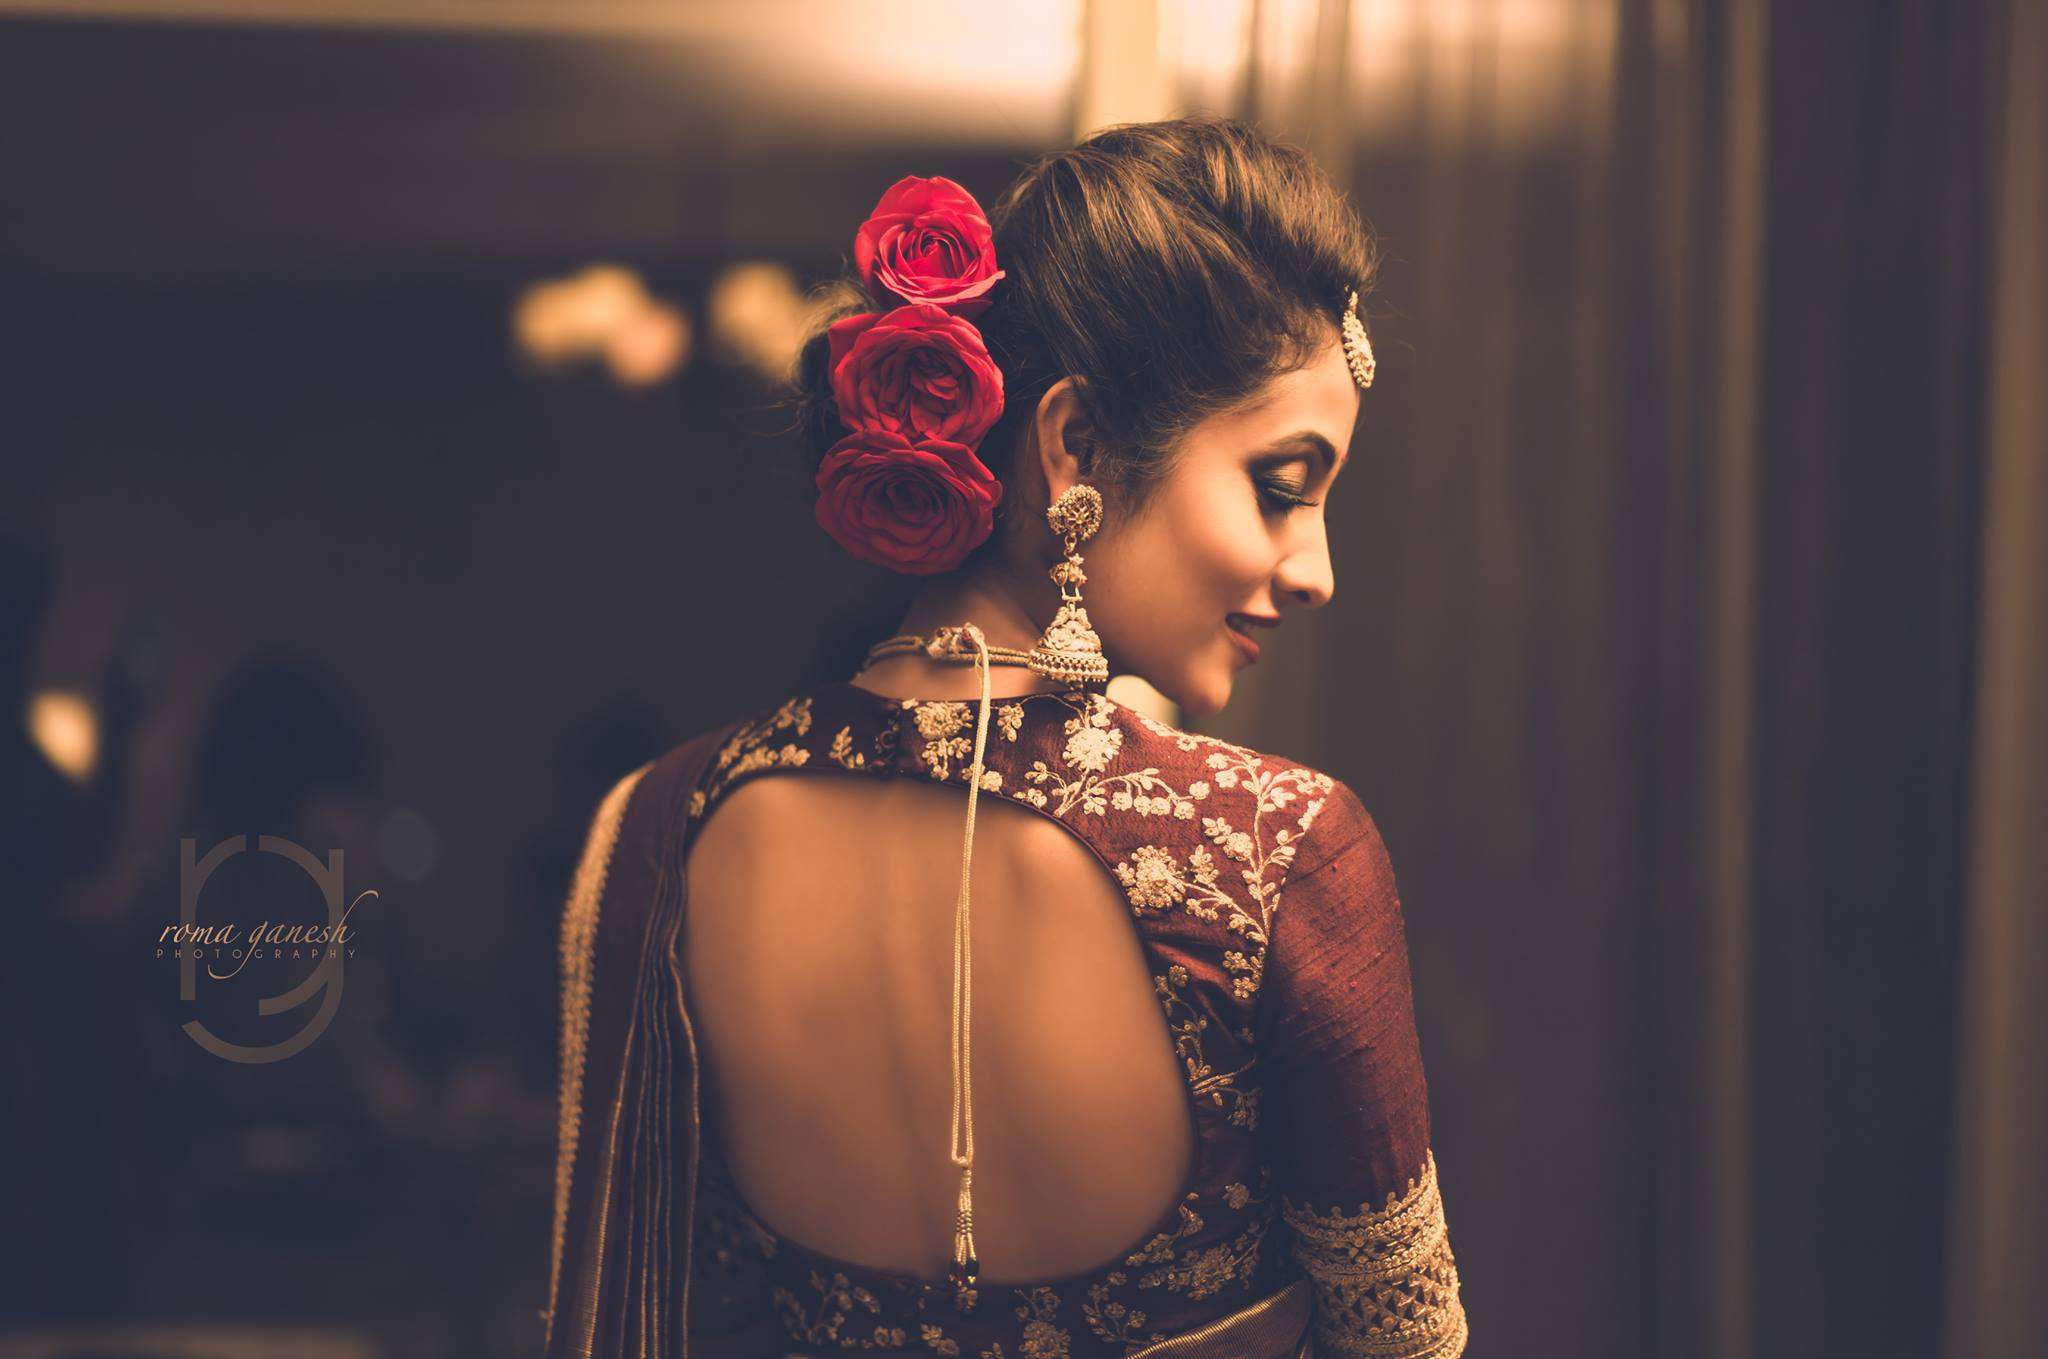 New Best Back Neck Blouse Designs That All Brides Want to Wear